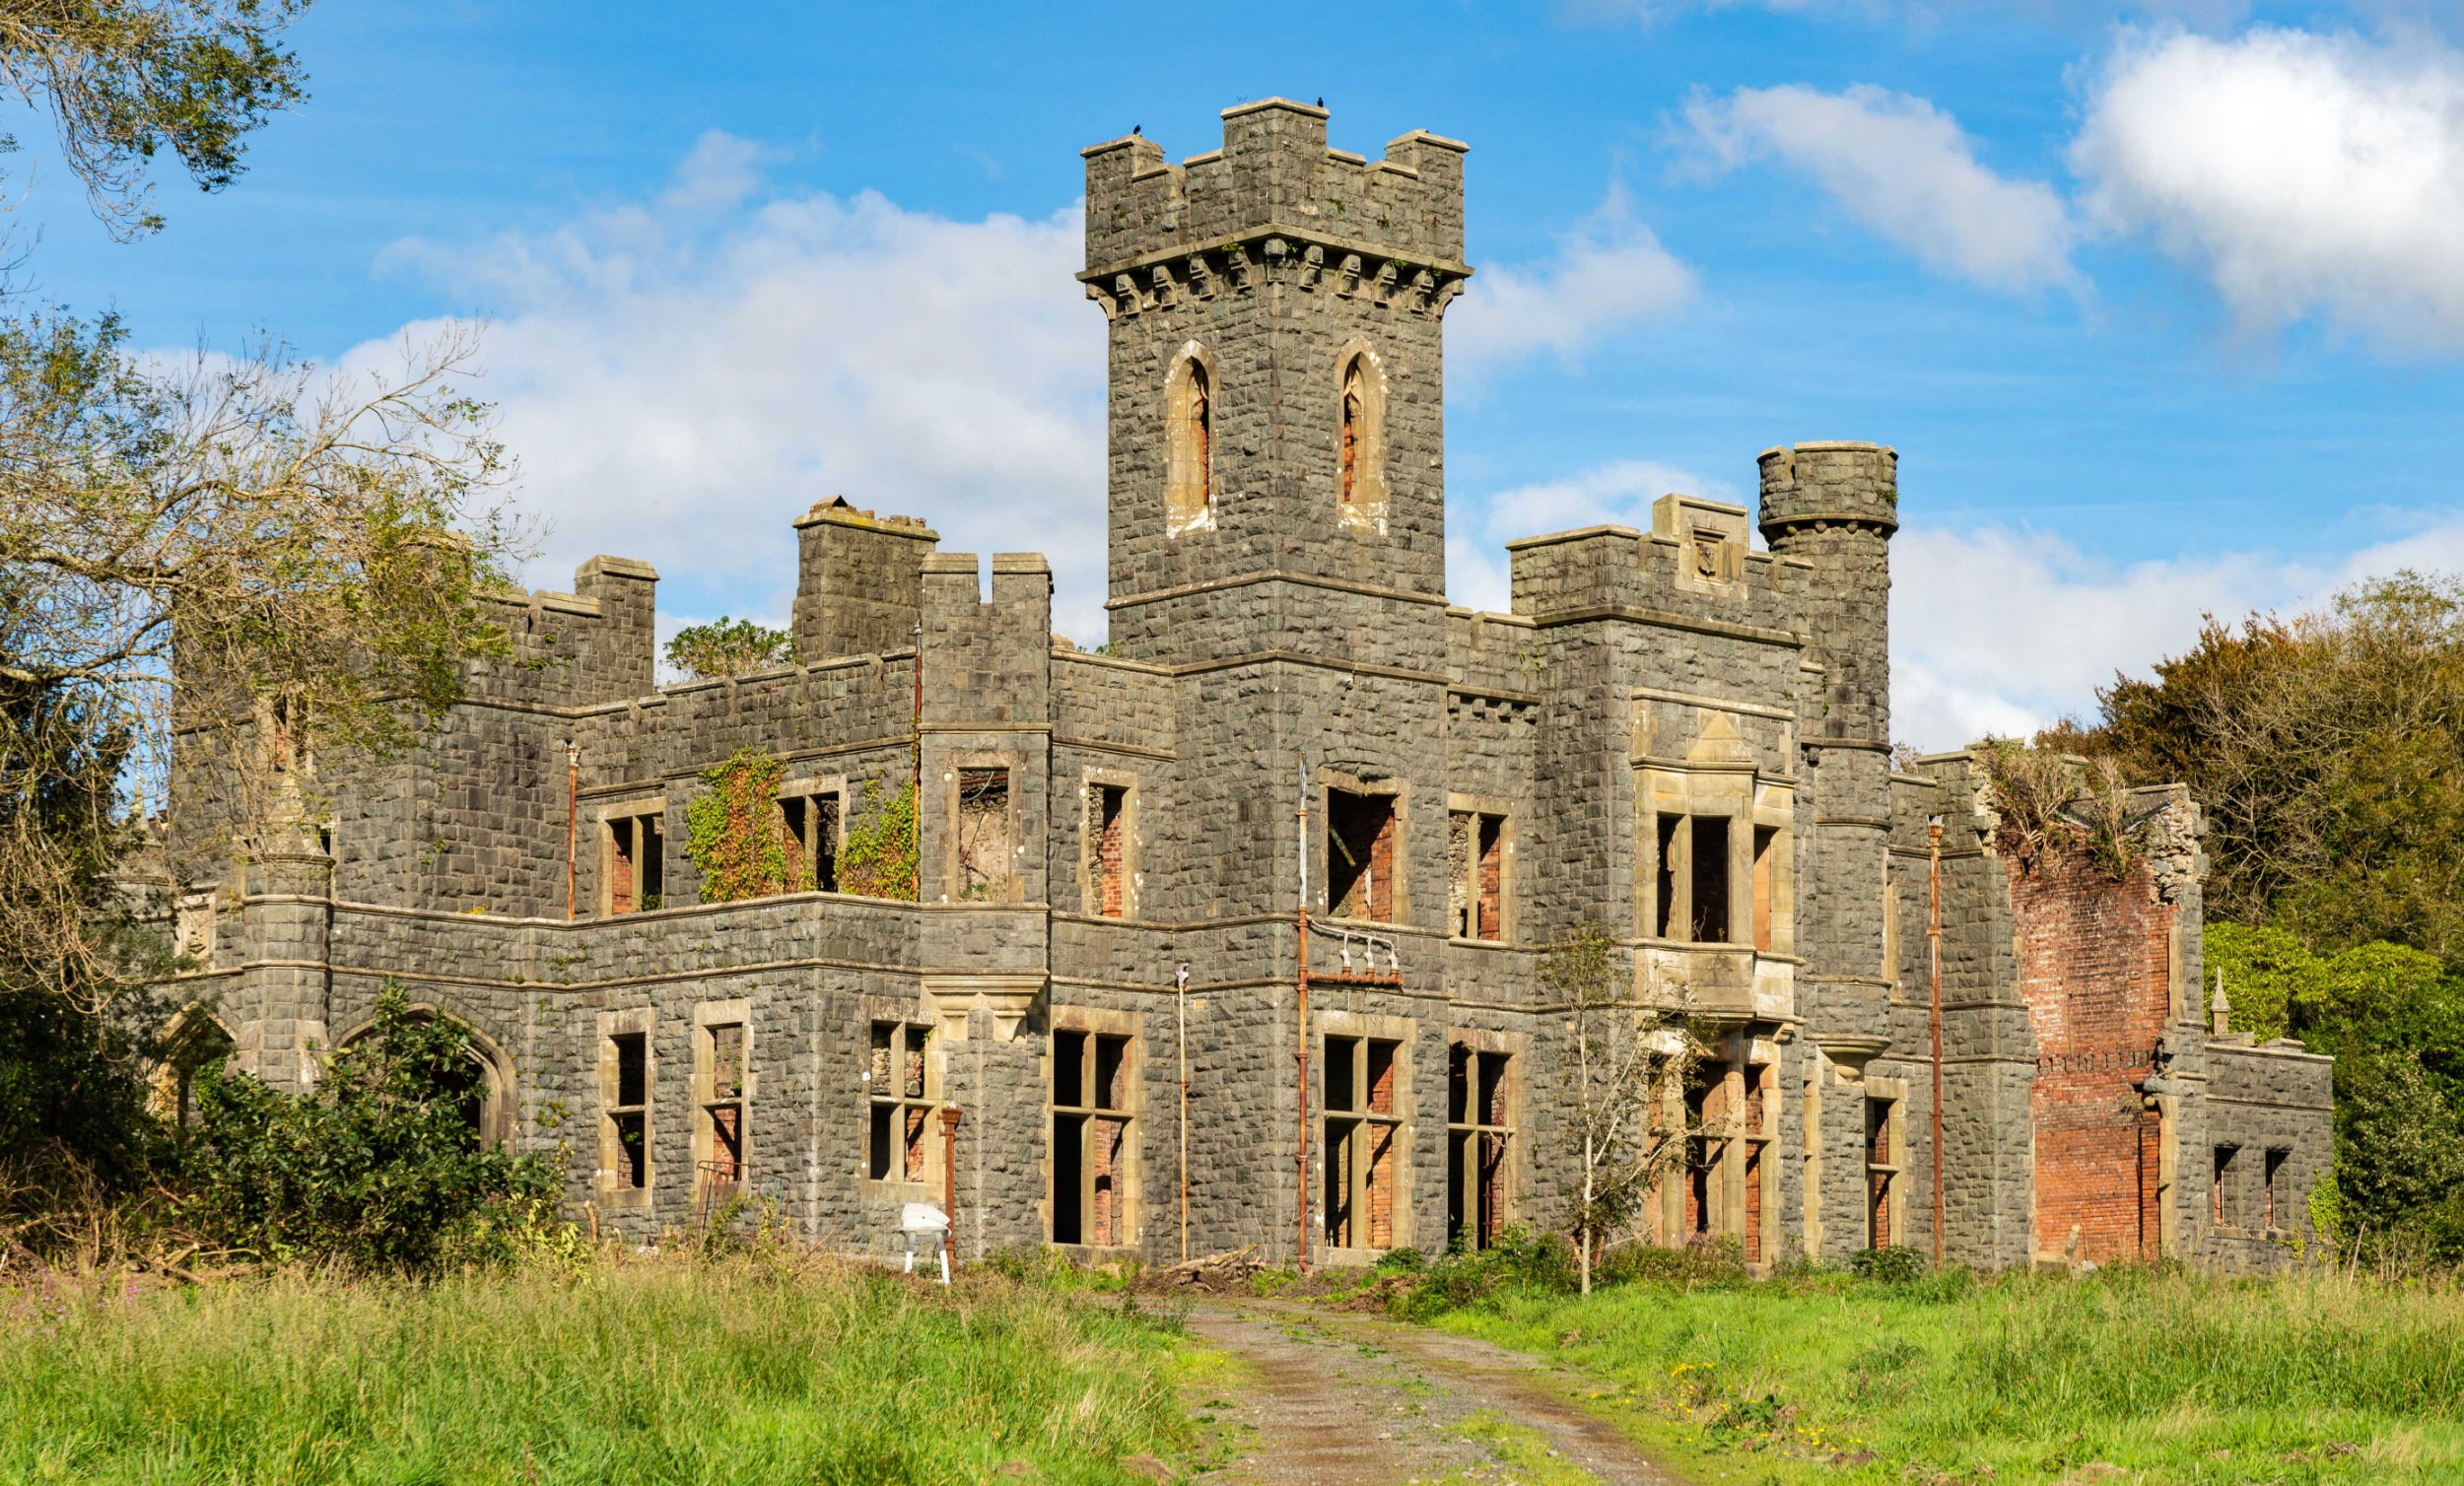 BNPS.co.uk (01202 558833) Pic: DafyddHardy/BNPS A stunning Welsh castellated mansion is on the market for a bargain ?500,000 - but it will take a brave owner to take on this ultimate DIY project. Plas Gwynfryn has no windows, floors or roof after fire ripped through the building 37 years ago and it has fallen into a derelict state since then and needs a complete restoration. The Grade II listed former mansion in Gwynedd, Wales, has been the home of an MP, a war hospital and a hotel in the last 140 years. But now it needs an ambitious new owner to save it from ruin and estate agents Dafydd Hardy warn it will be a labour of love.